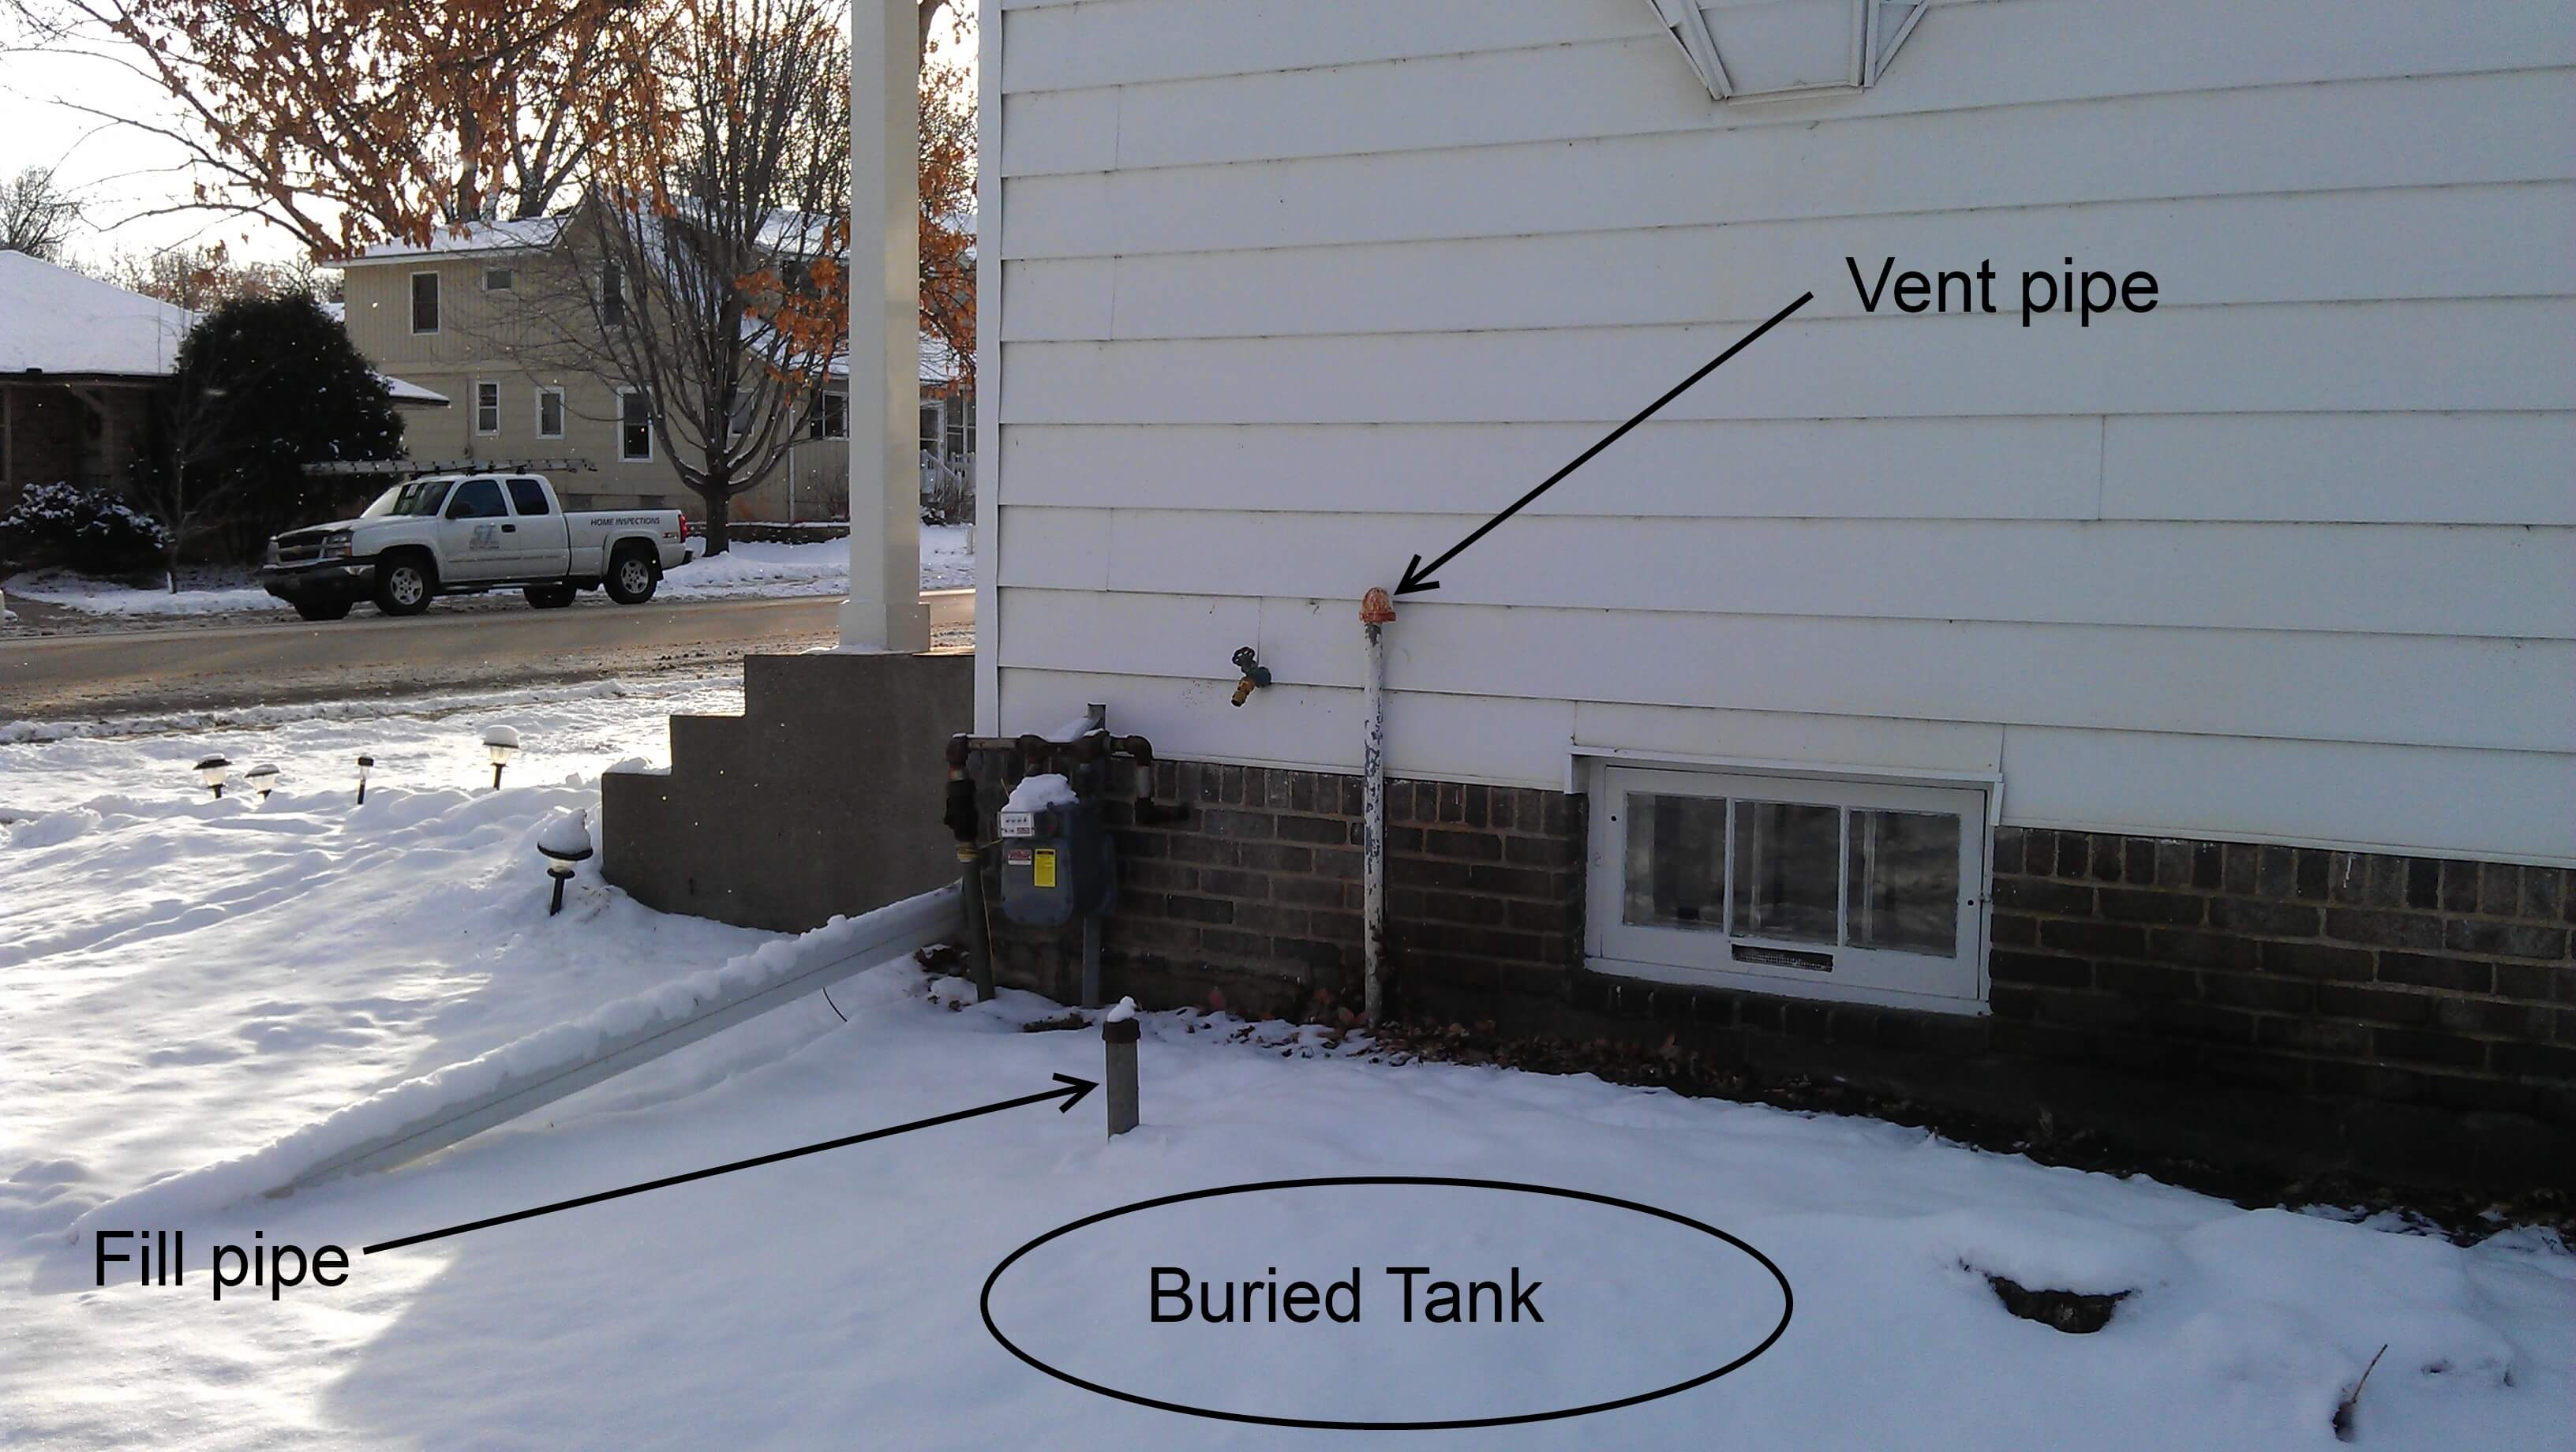 Brilliant Clues To Finding Buried Fuel Oil Tanks Startribune Com Download Free Architecture Designs Scobabritishbridgeorg